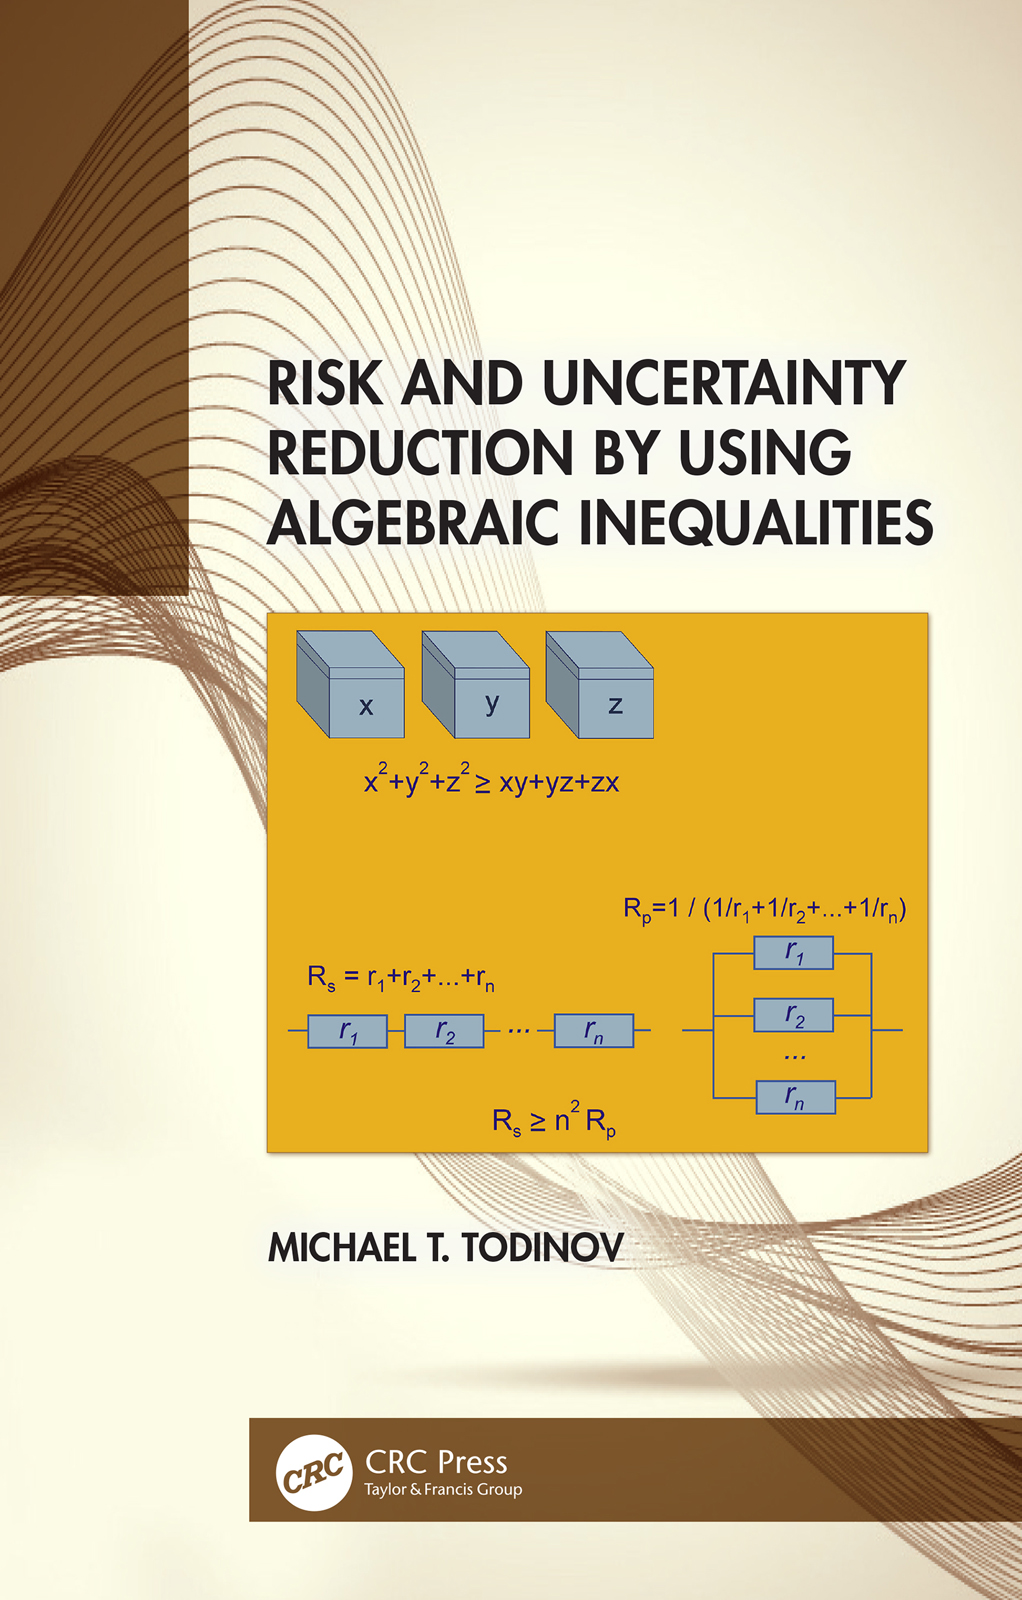 Using Algebraic Inequalities to Support Risk-Critical Reasoning